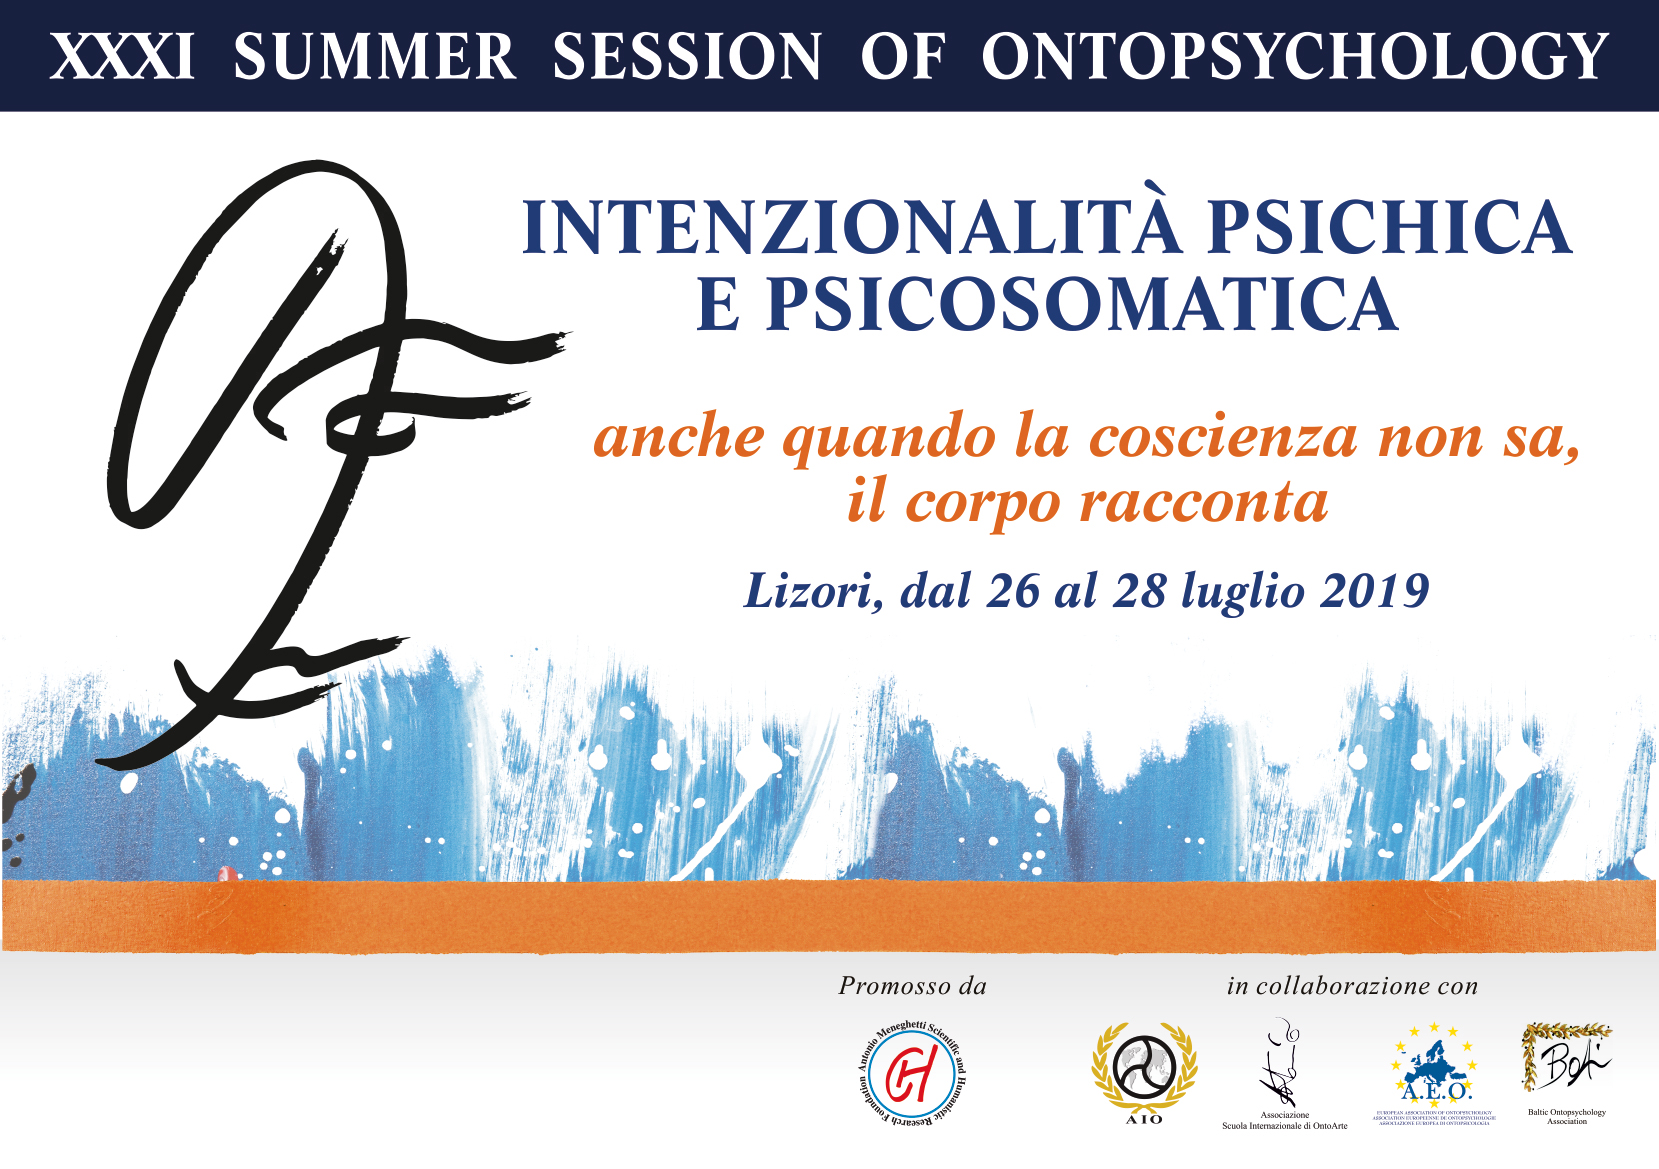 XXXI Summer session of Ontopsychology